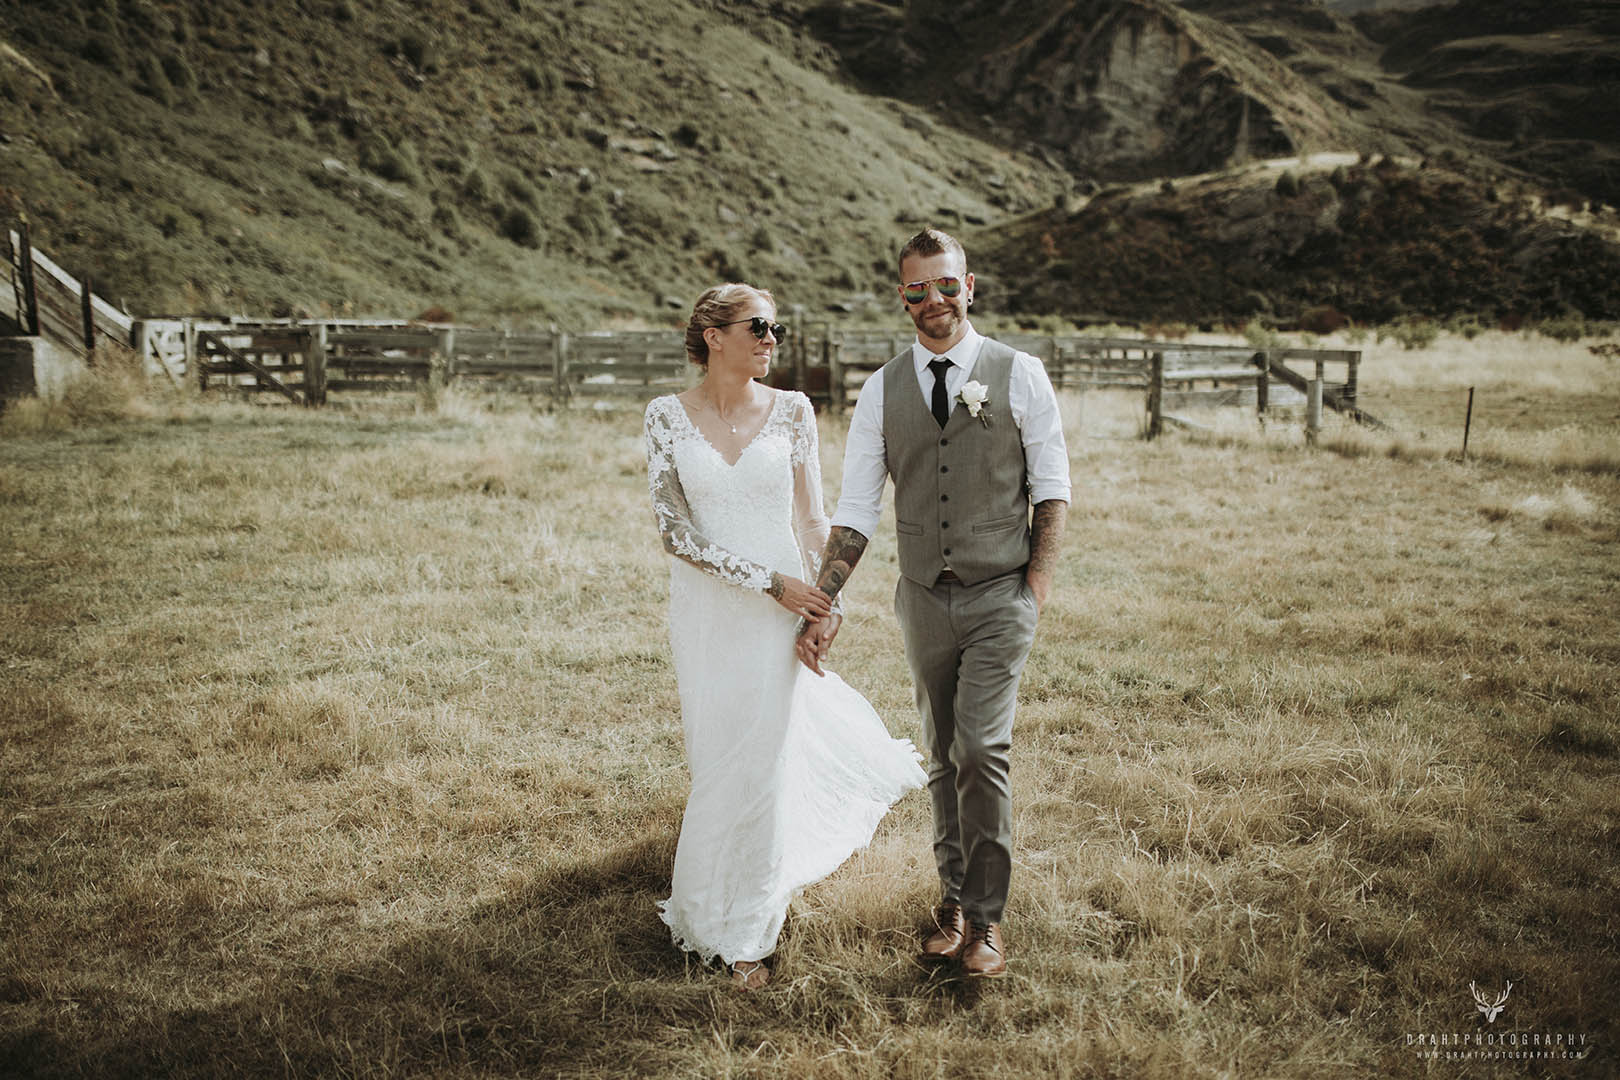 The Helicopter Wedding in the Mountains Sampler - Draht Photography